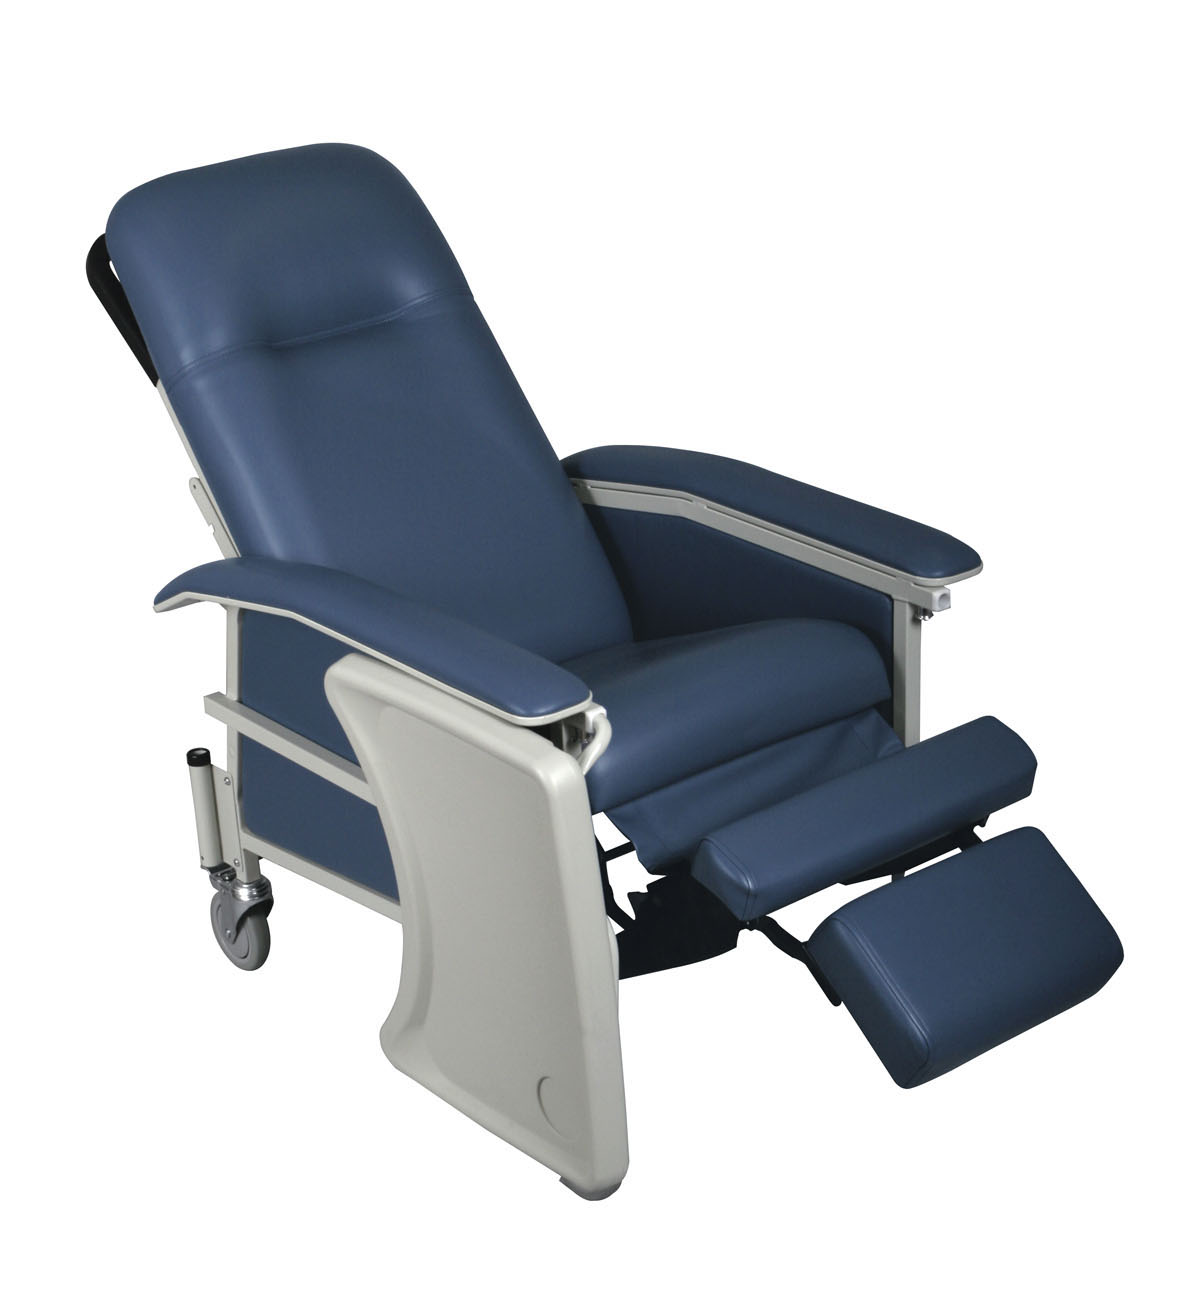 Image of: Good Medical Recliner Chairs